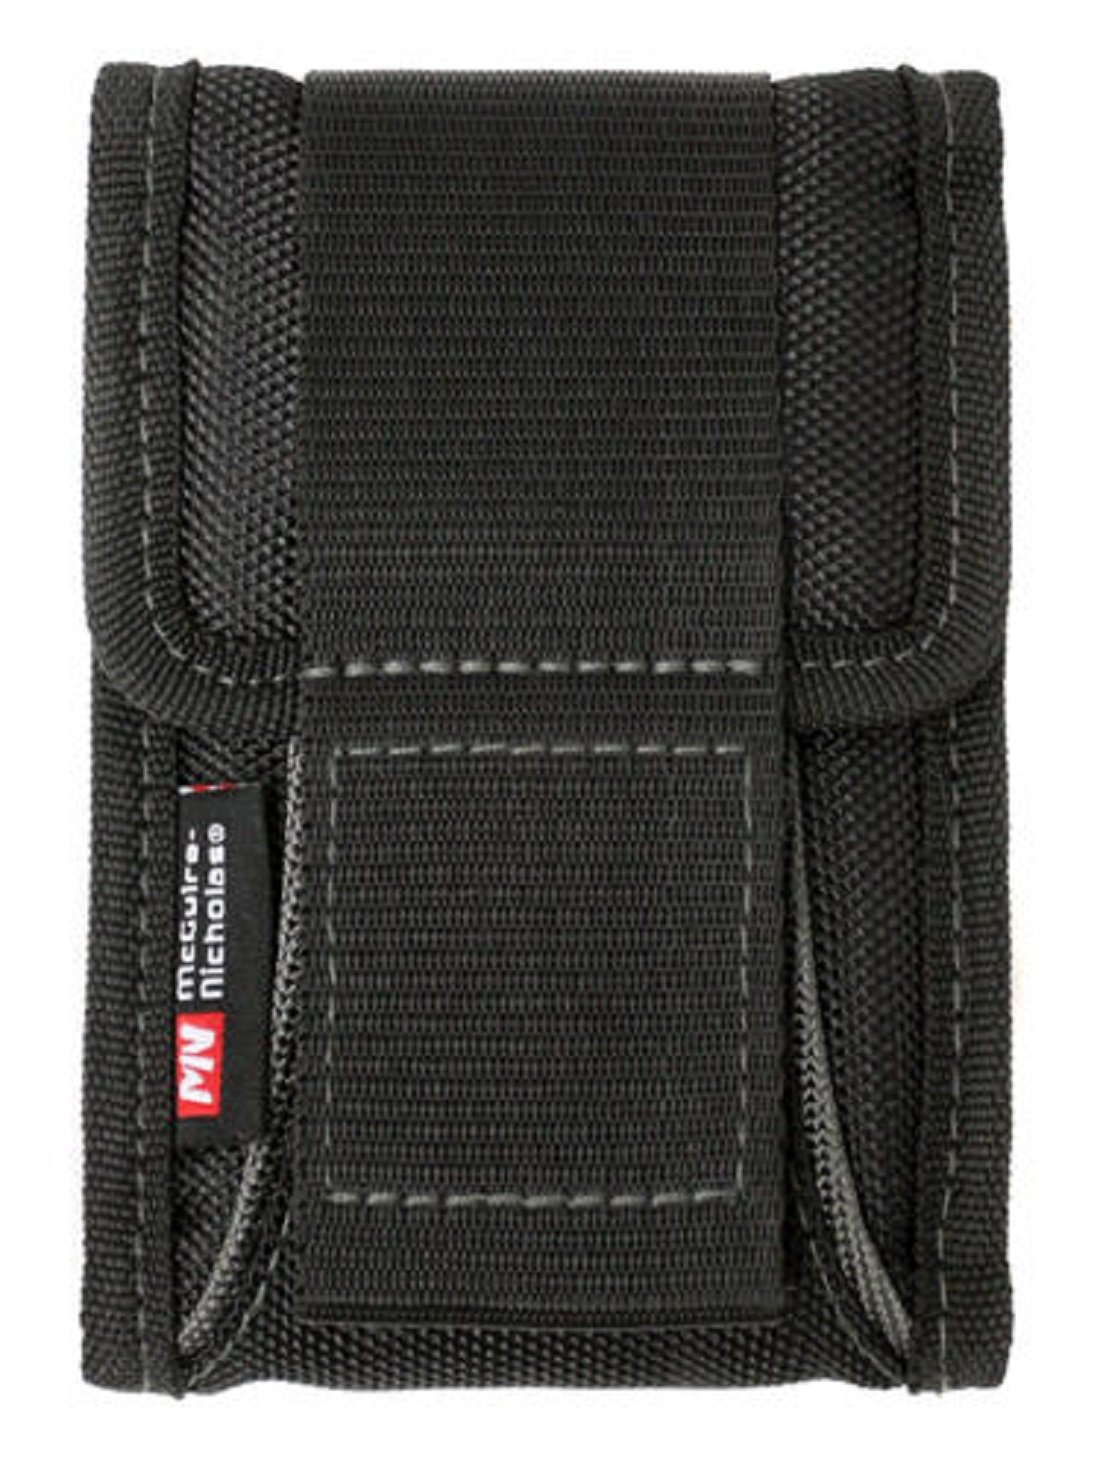 McGuire-Nicholas Belt Waistband Cell Phone Holder - with adjustable strap, black - 4'' W x 6'' H x 1'' D